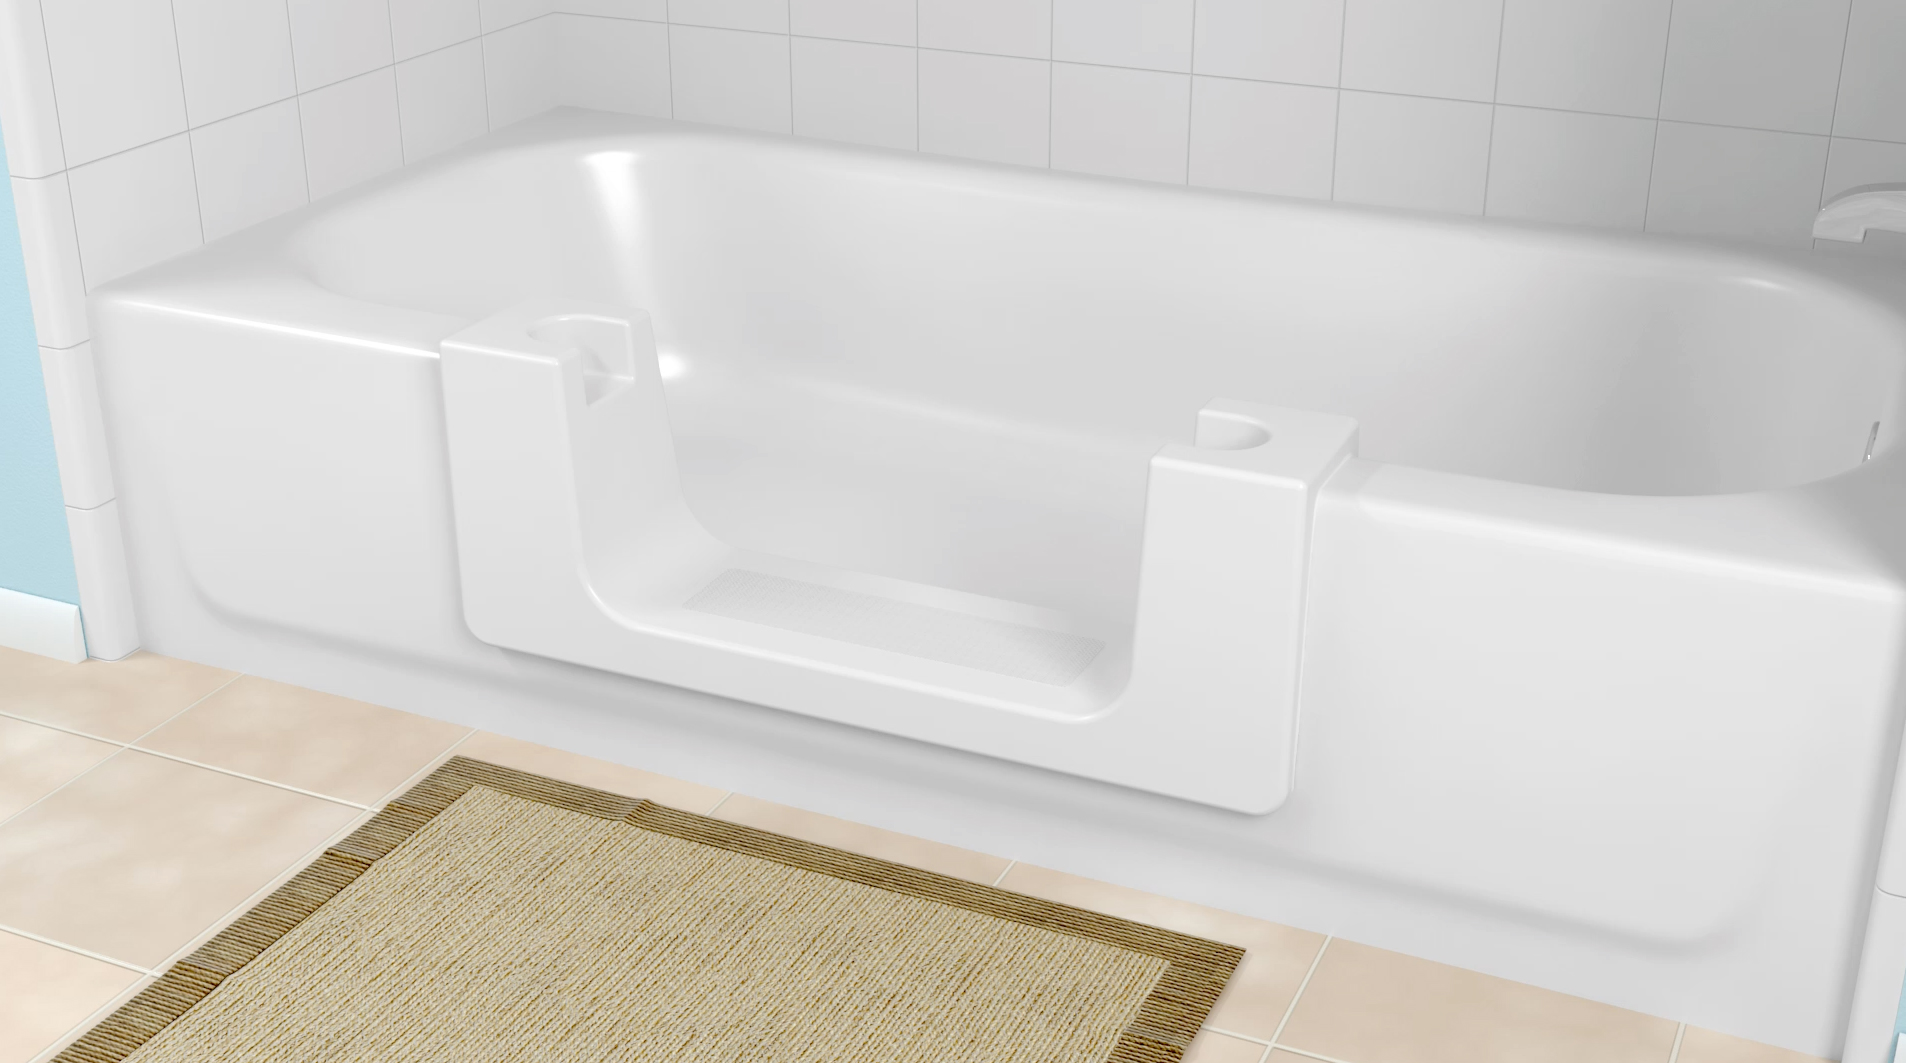 Images Of Bathrooms With Walk In Tubs